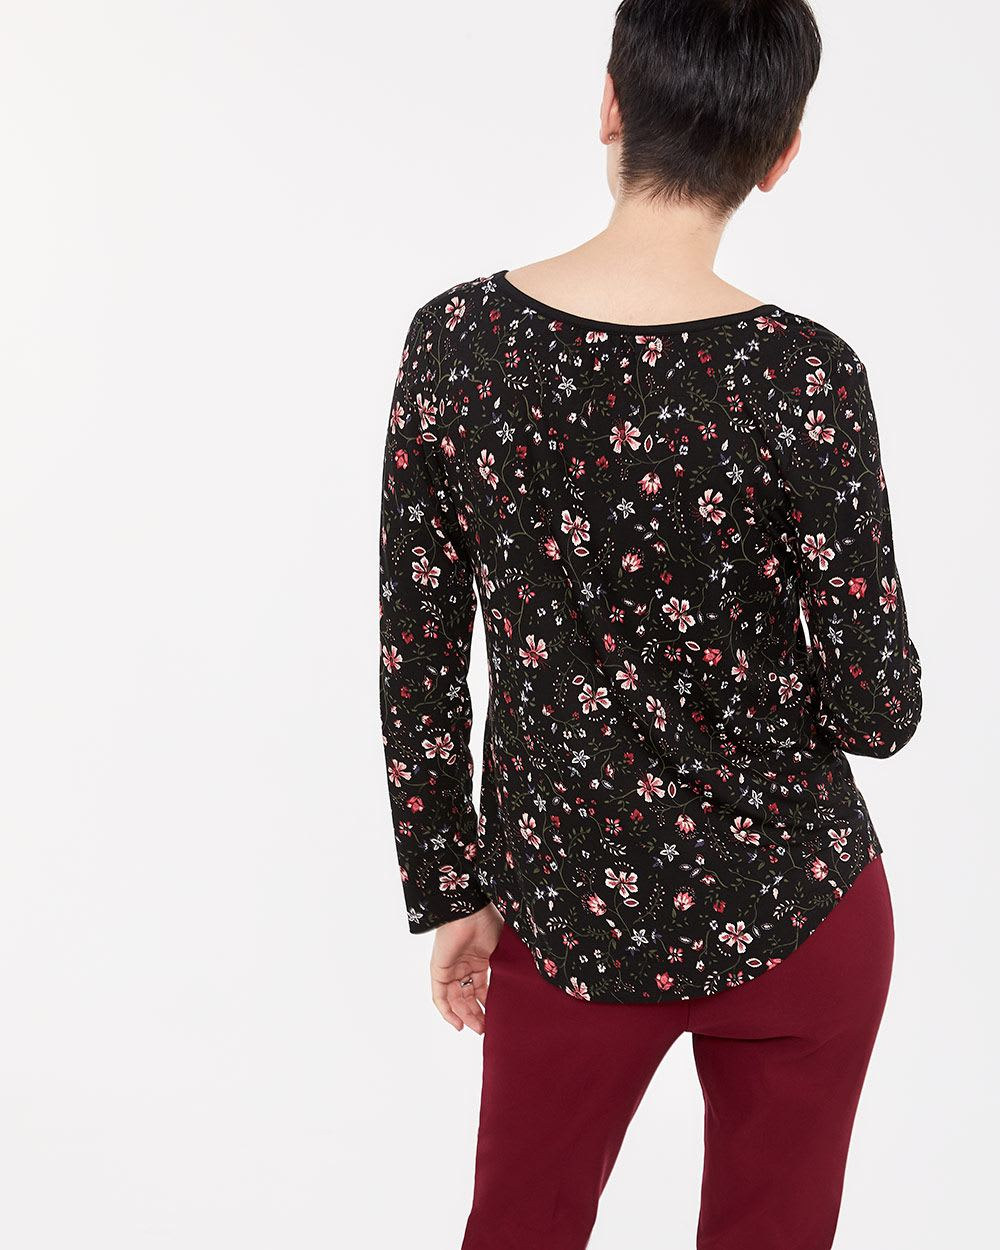 Roll-Up ¾ Sleeve Printed Henley Top